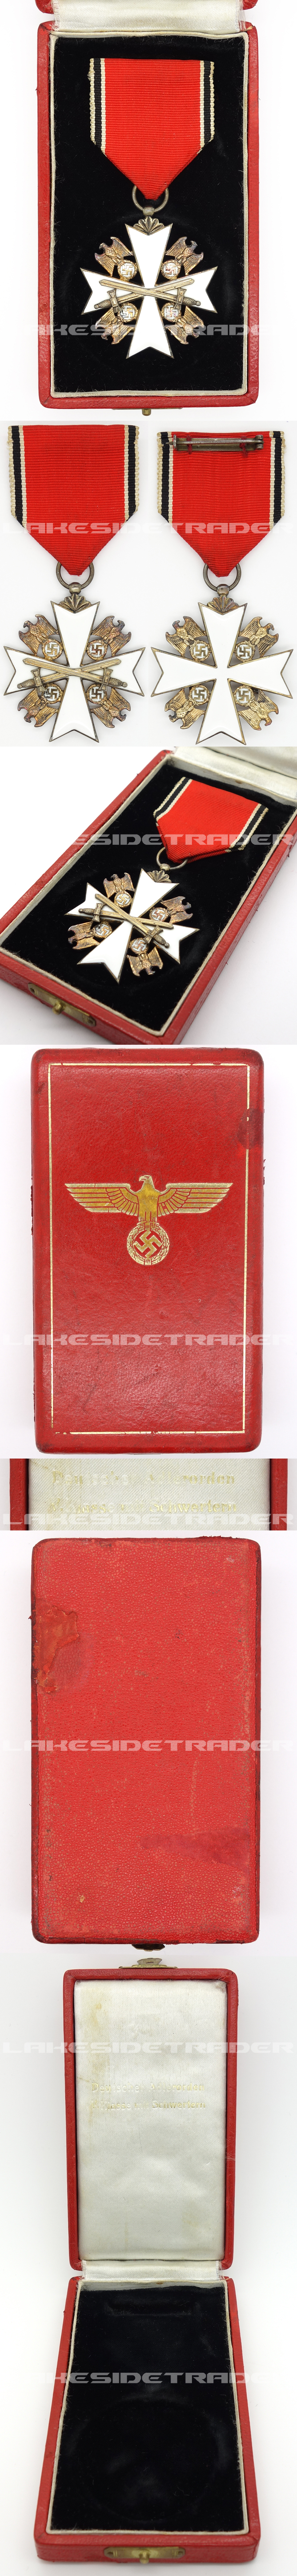 Cased German Eagle Order 5th Class with Swords 1939 by Godet